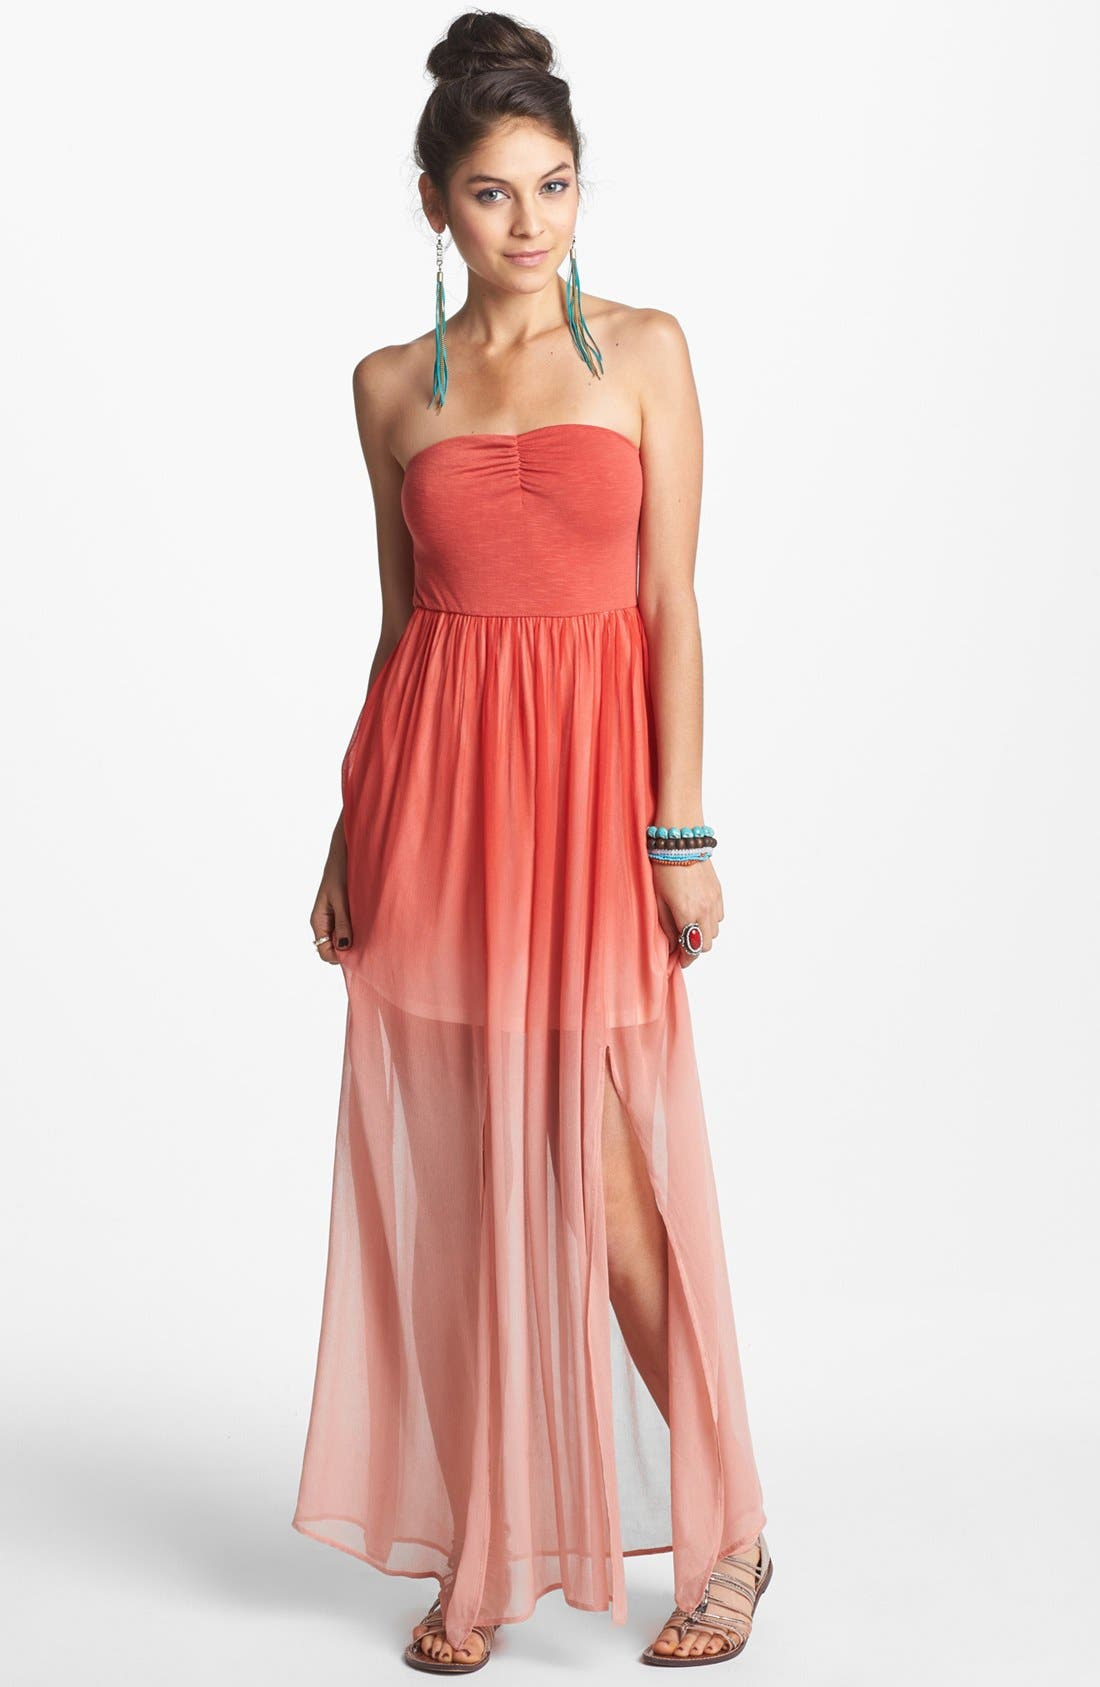 Alternate Image 1 Selected - Fire Strapless Print Chiffon Maxi Dress (Juniors)